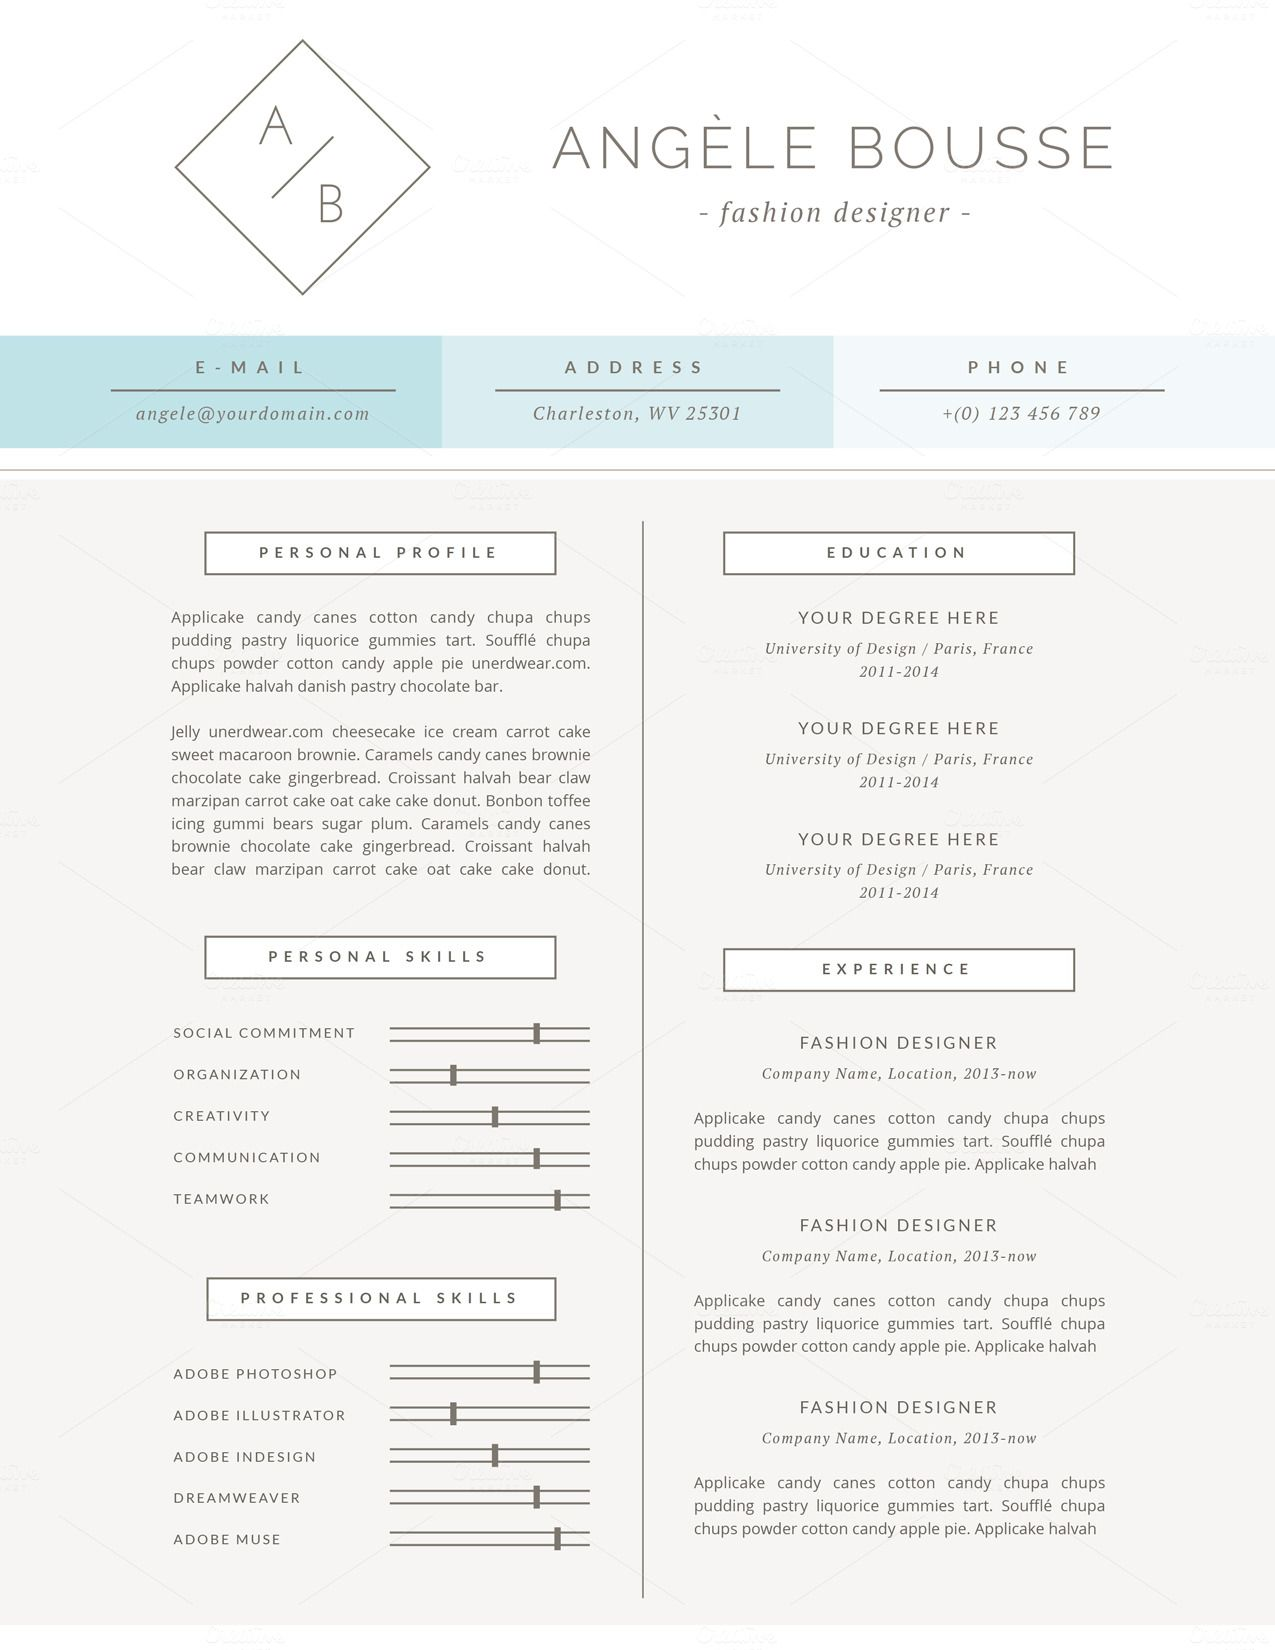 Stylish Resume Template / Angéle | Creativo, Currículum y Zorros